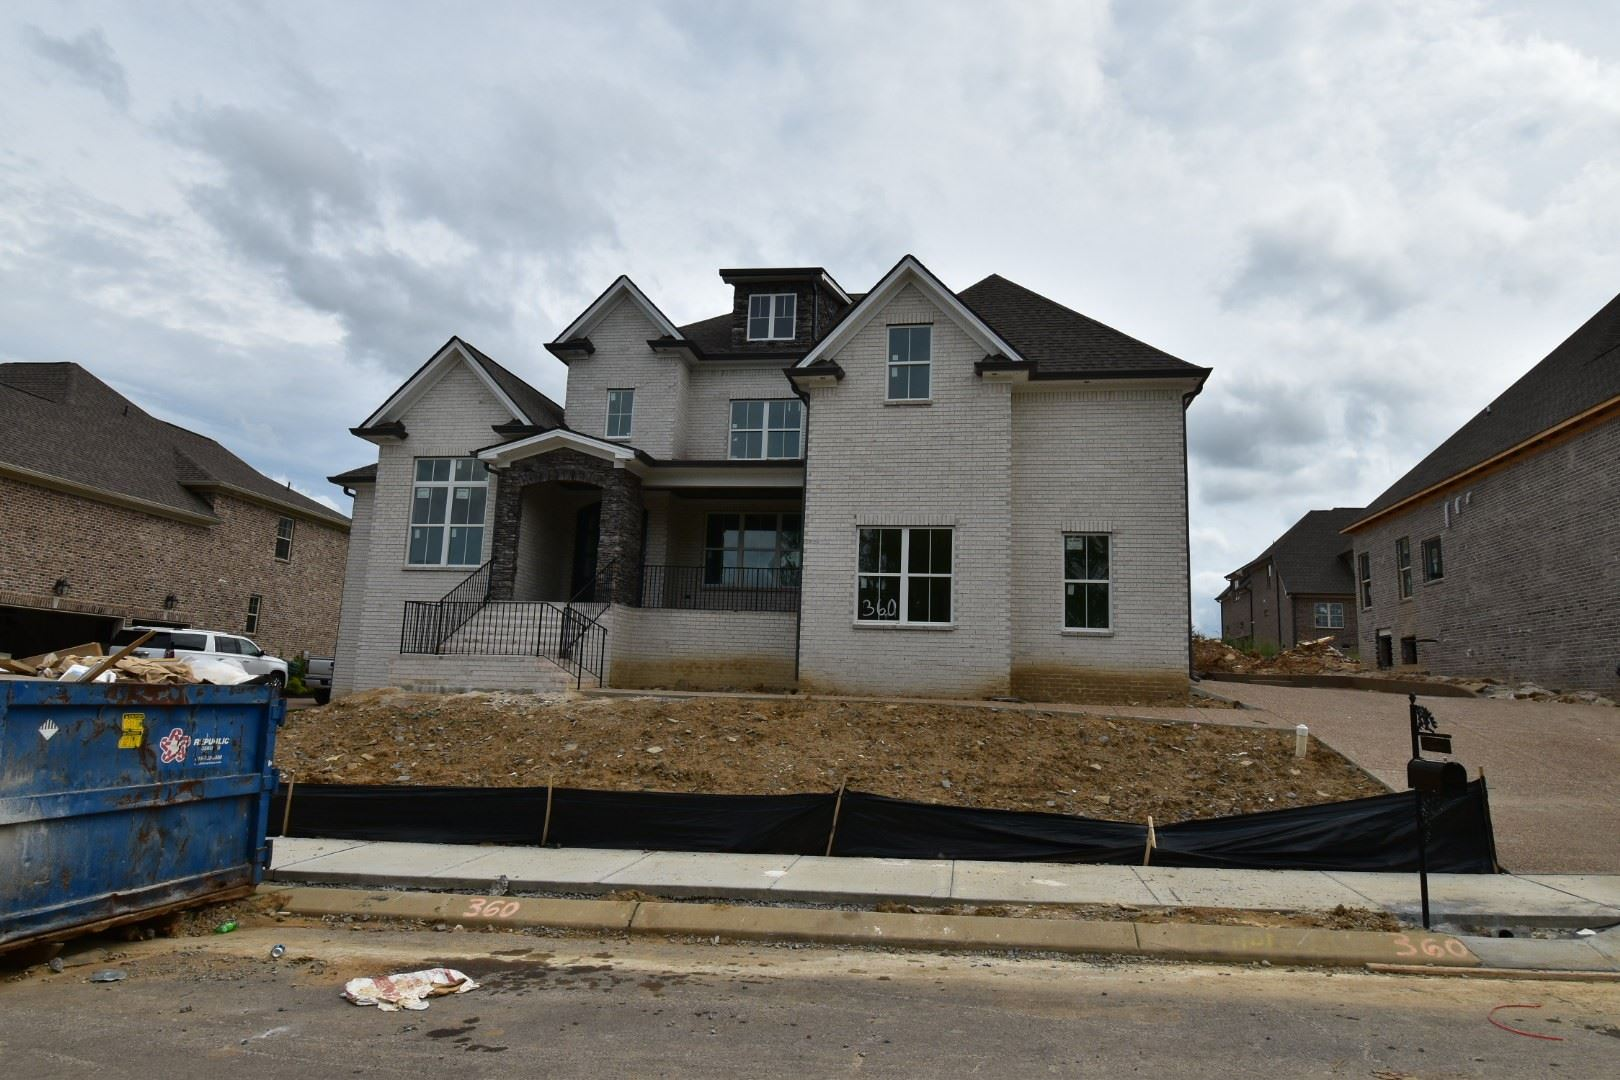 Photo of 5011 Wallaby Dr (360), Spring Hill, TN 37174 (MLS # 2138051)